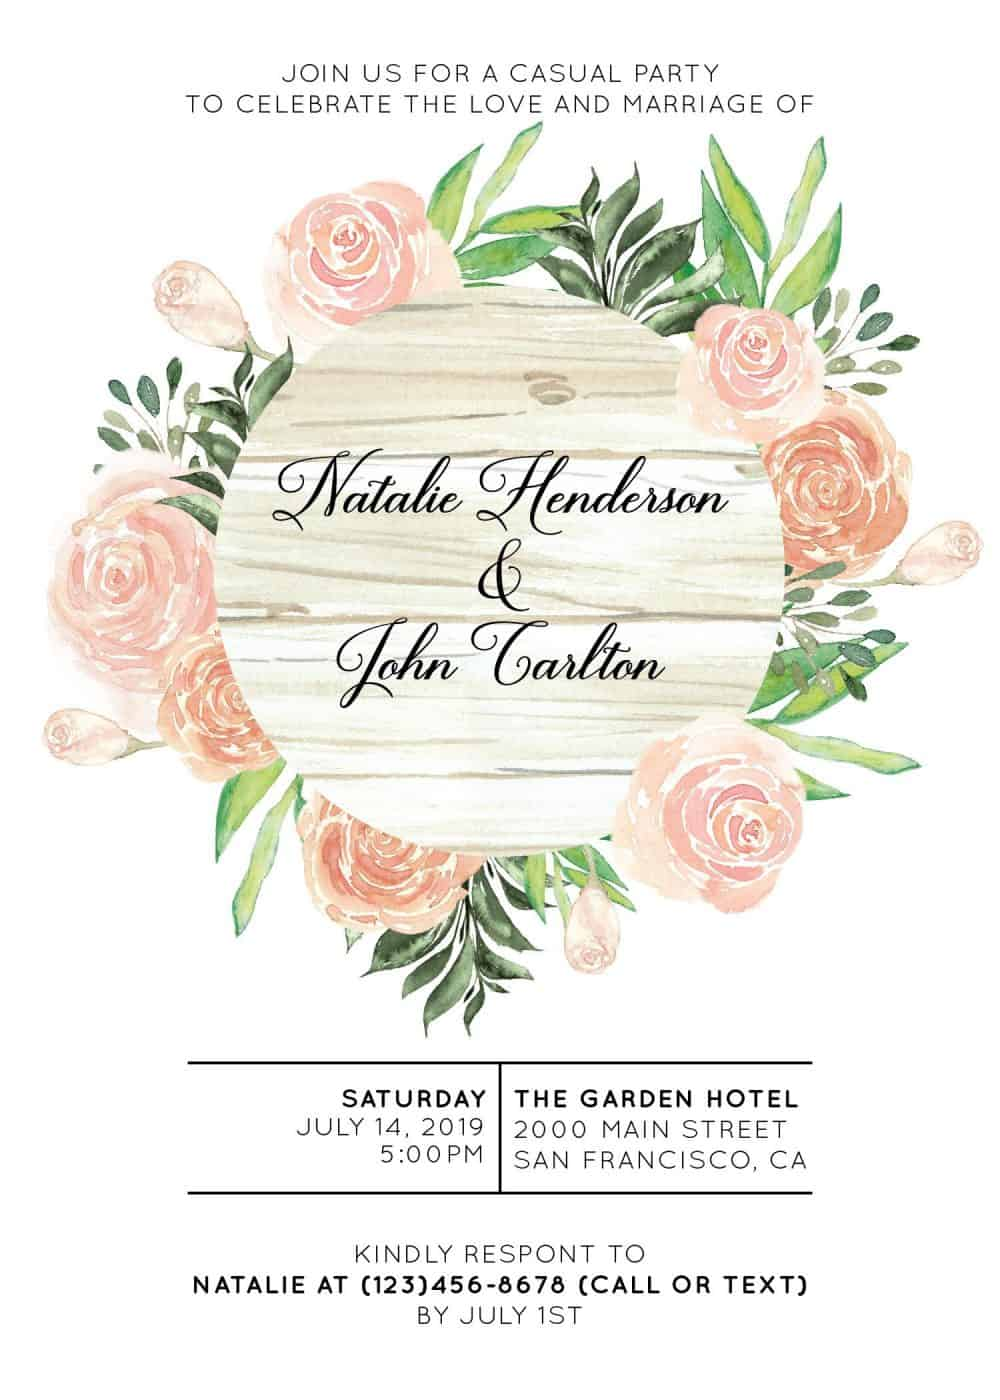 Elopement Reception Party Invitations, Casual Wedding Reception Cards, Printed Printable Wedding Party Card, Gentle Floral Design elopement249